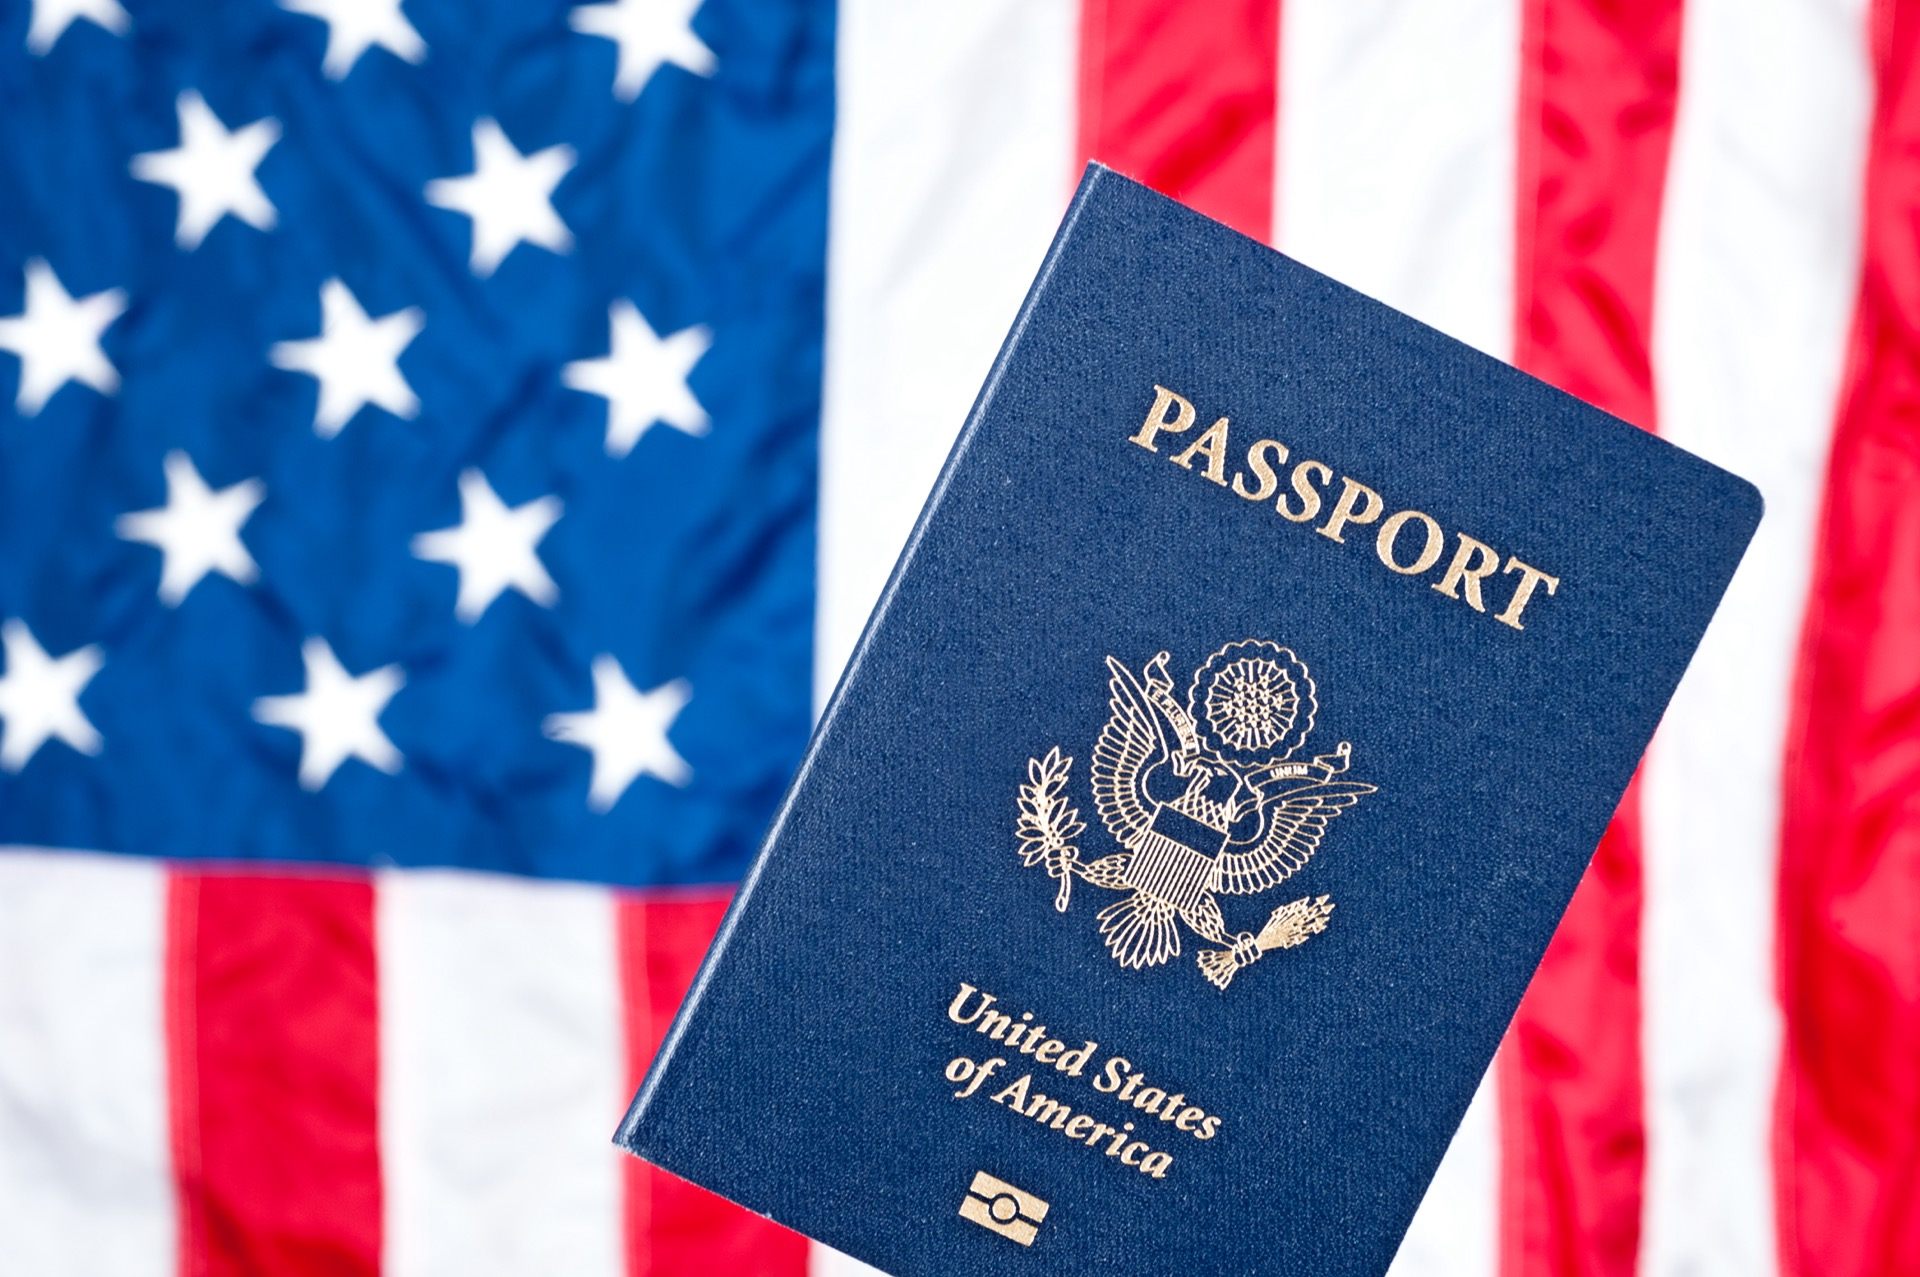 American flag and passport - evisa to russia